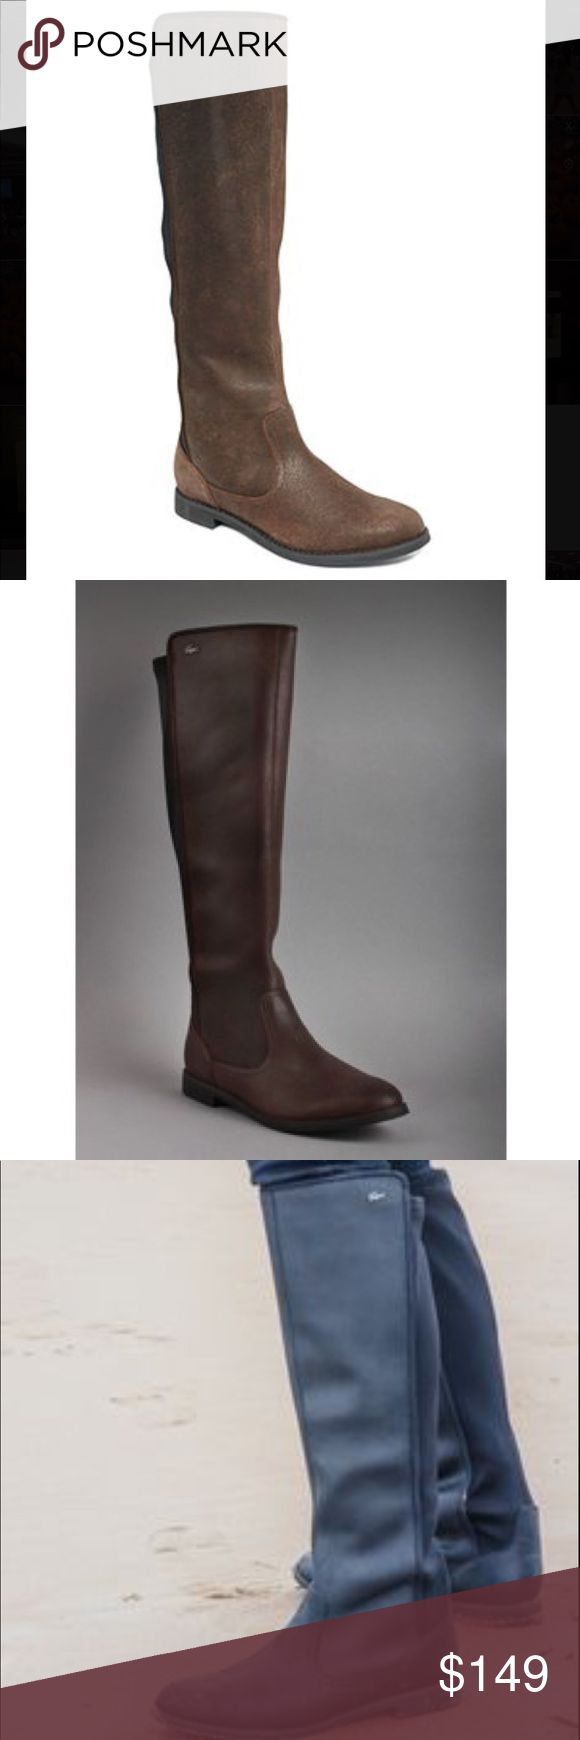 Lacoste Rosemont Boots Lacoste Rosemont 5 CLW below the knee boots! I was so excited to get these and they were my favorite go to boot for the entire fall/winter season. Perfect heel height for everyday wear! I promise you will be in love!! They are also in great used condition! Exact color of boot is closest to photos 1 🌵i LOVE offers!                                                                        🌵bundle and save 15% 🌵shipped from a smoke/pet free home…